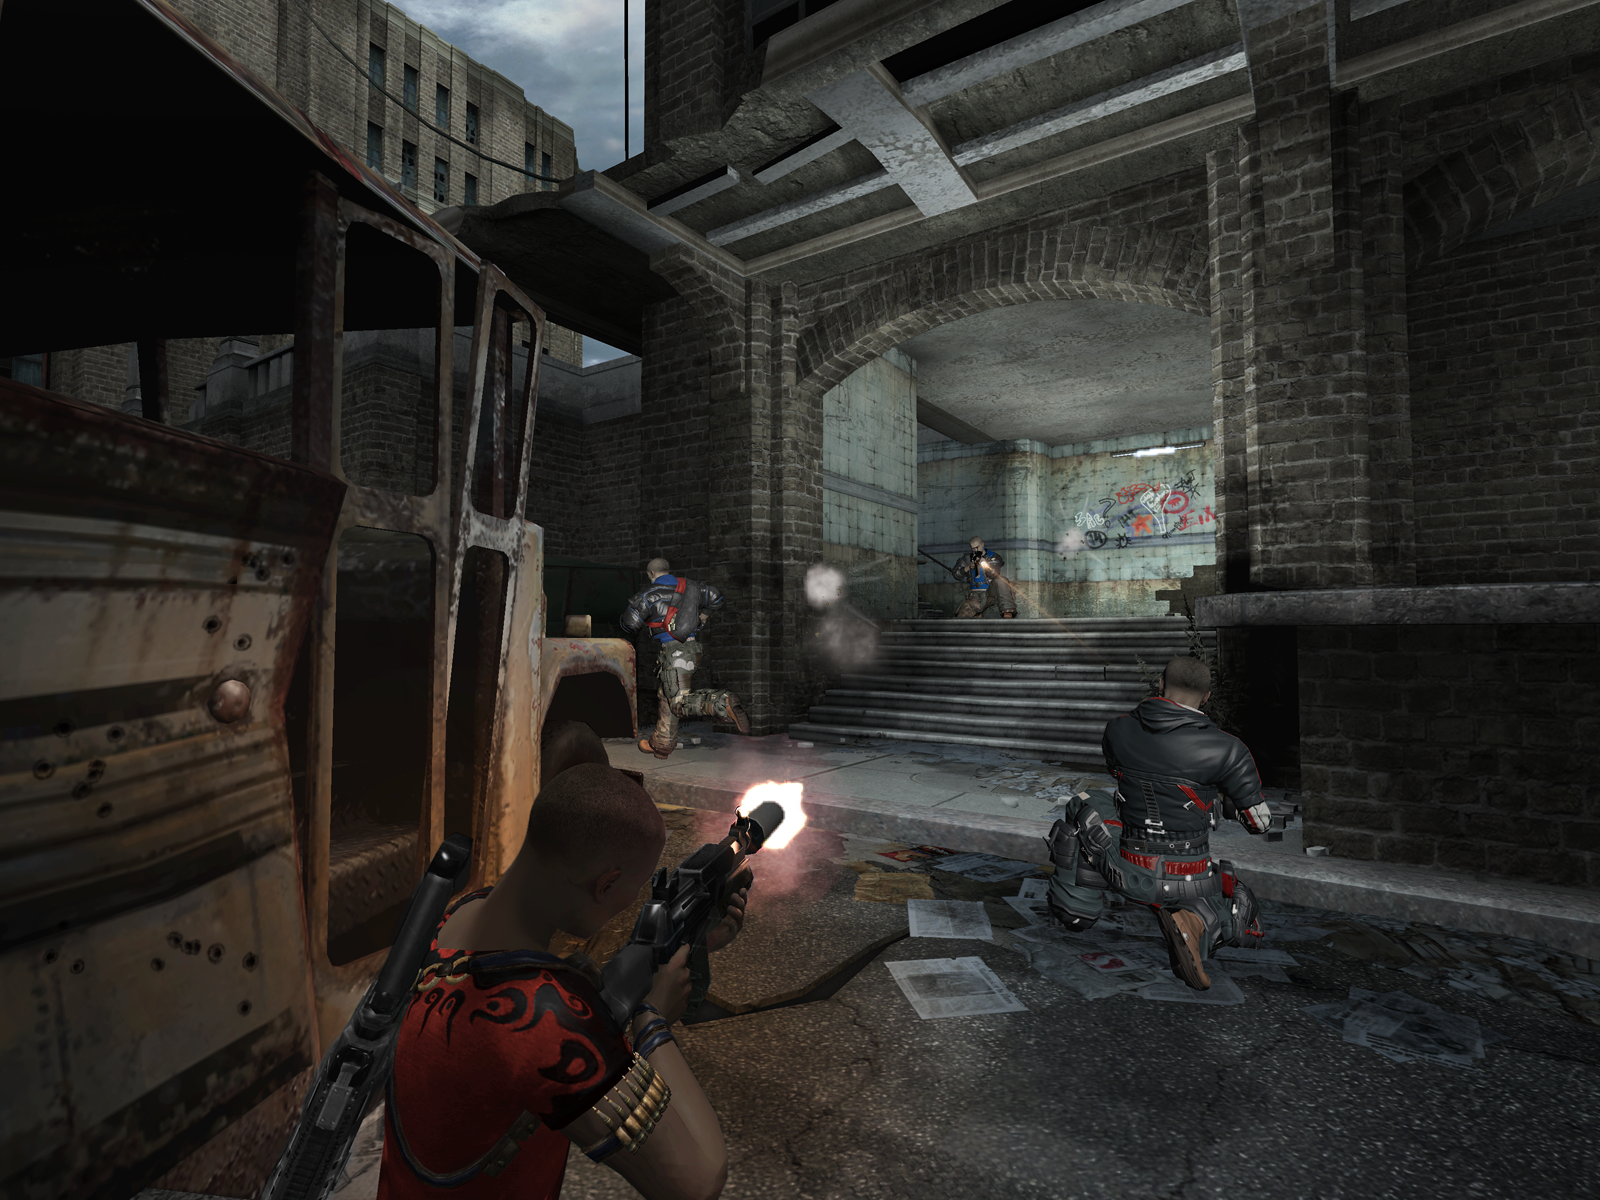 third person shooter video game - HD1600×1200